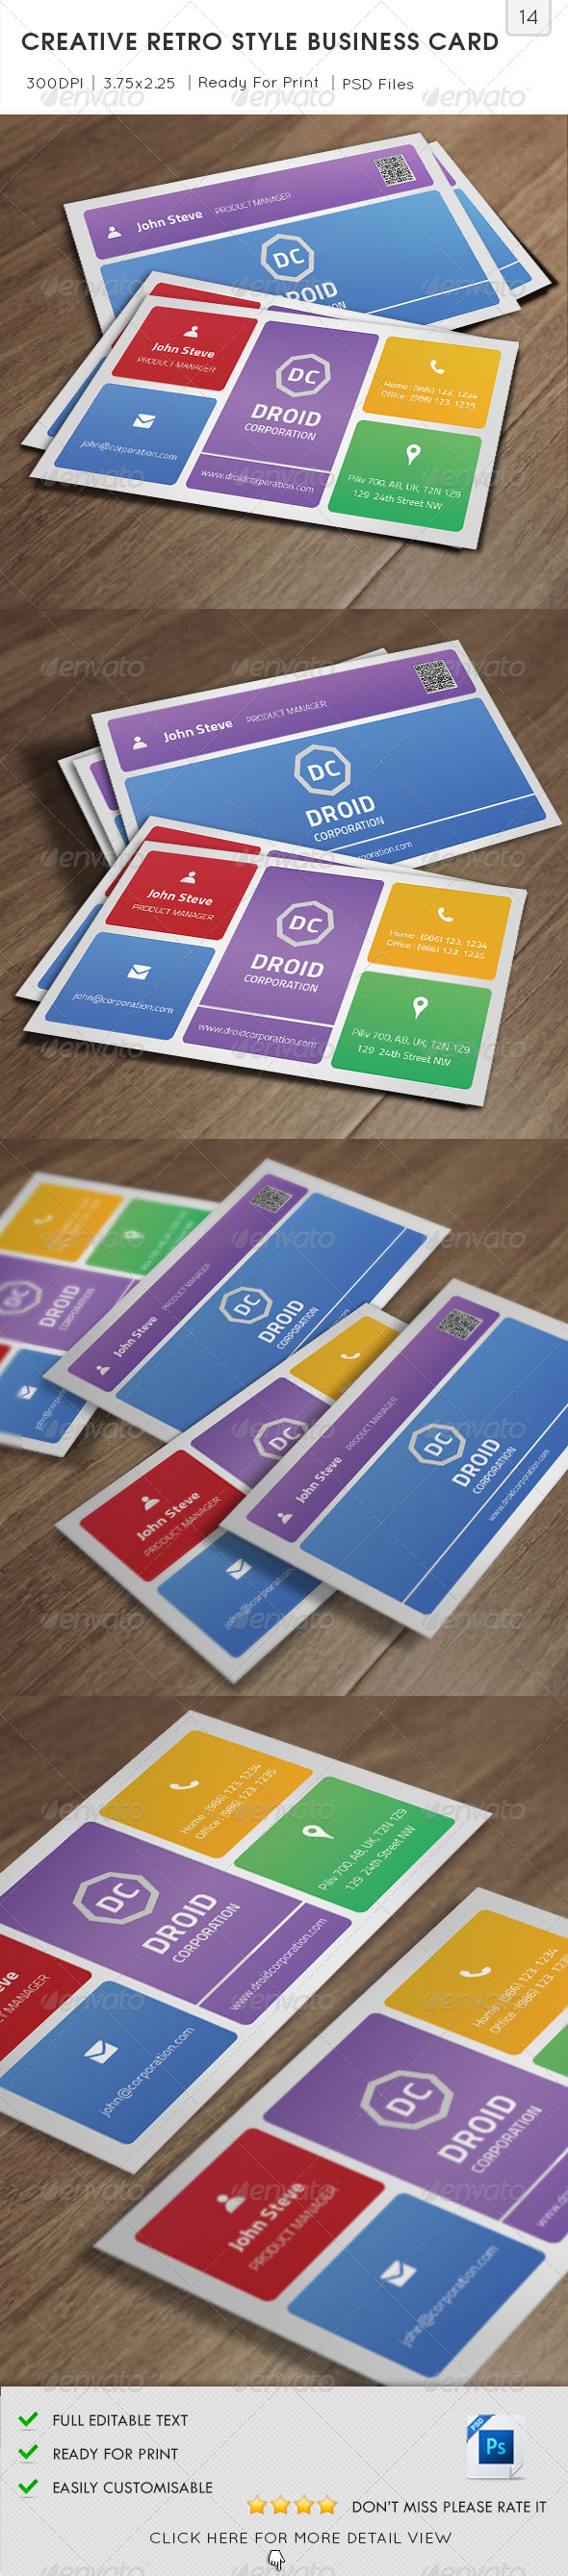 GraphicRiver Creative Retro Style Business Card v14 5818744